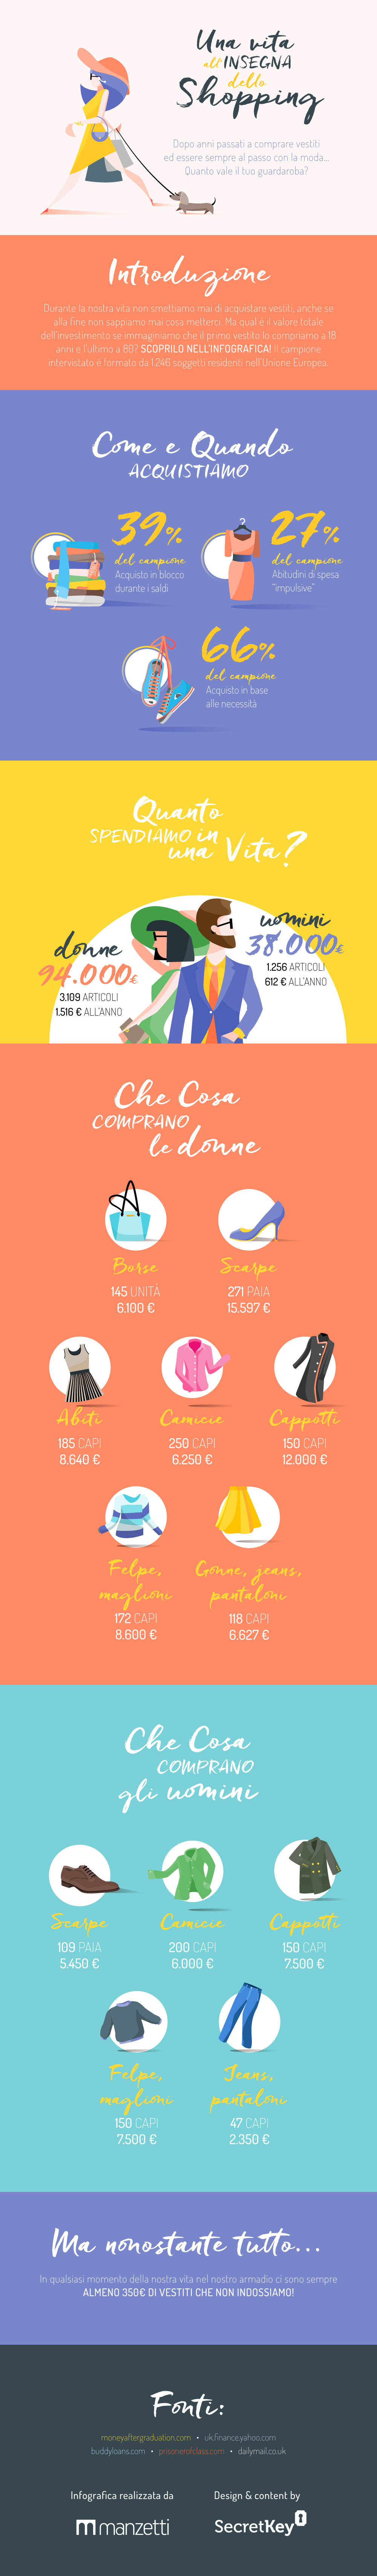 Infografica: Una vita all'insegna dello Shopping!